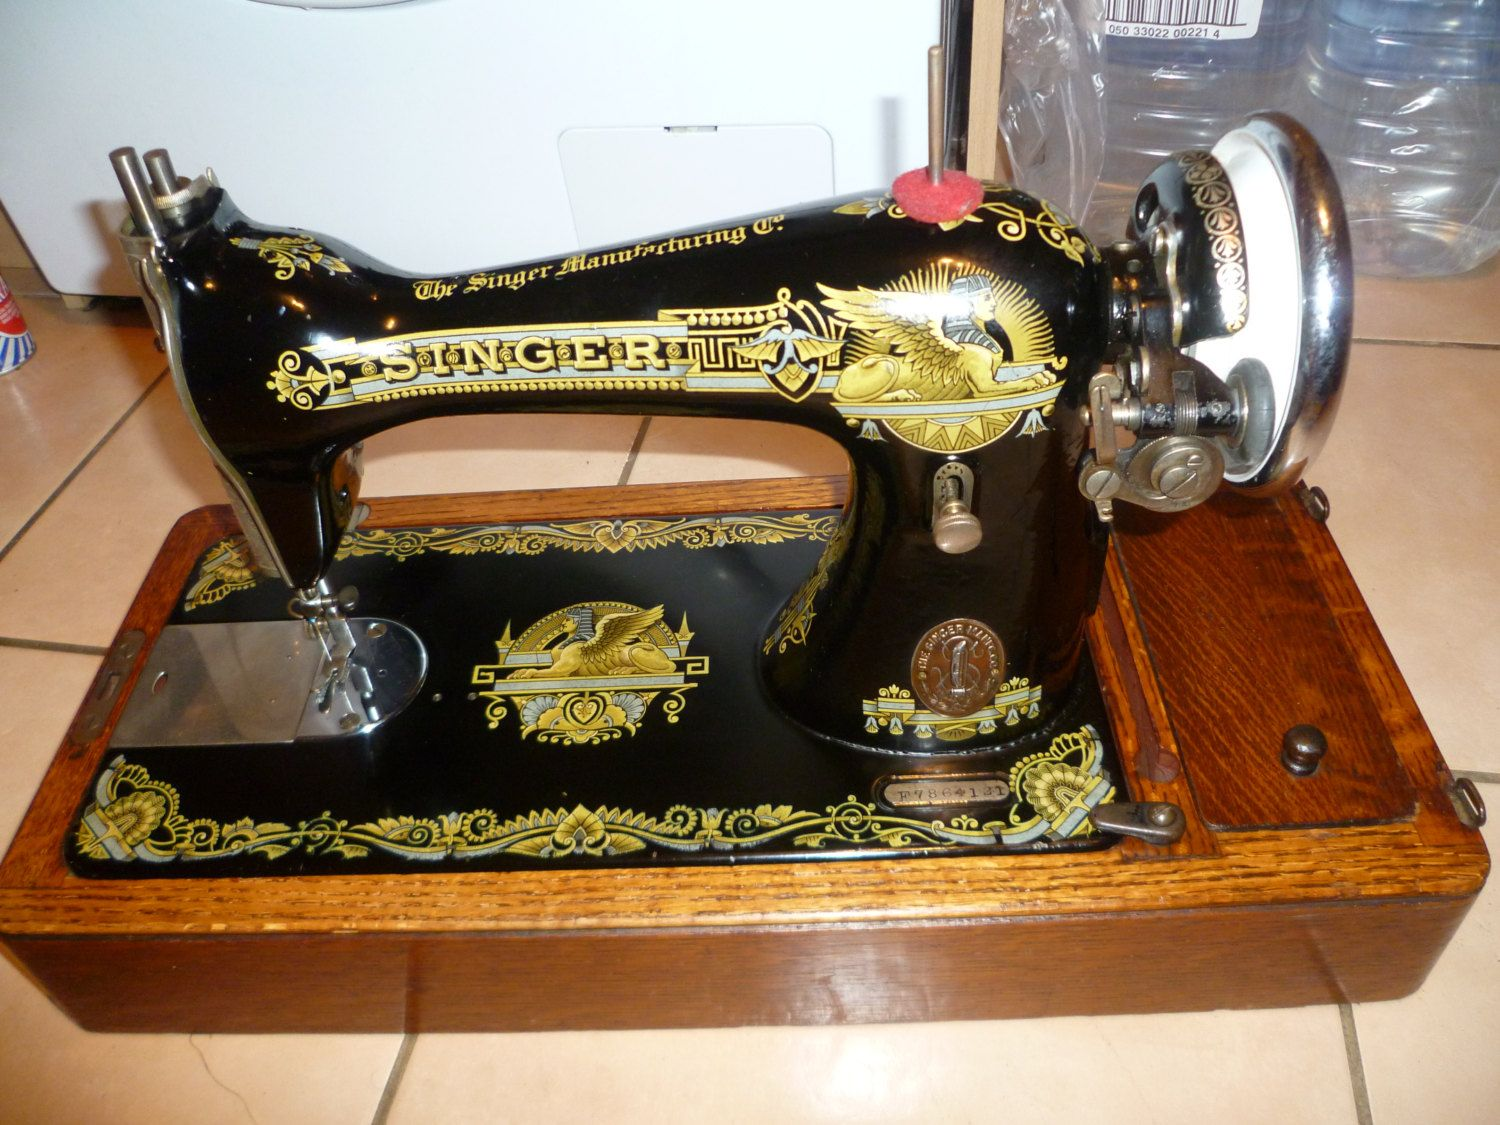 How to determine the year of the sewing machine Singer. Serial numbers of Singer sewing machines